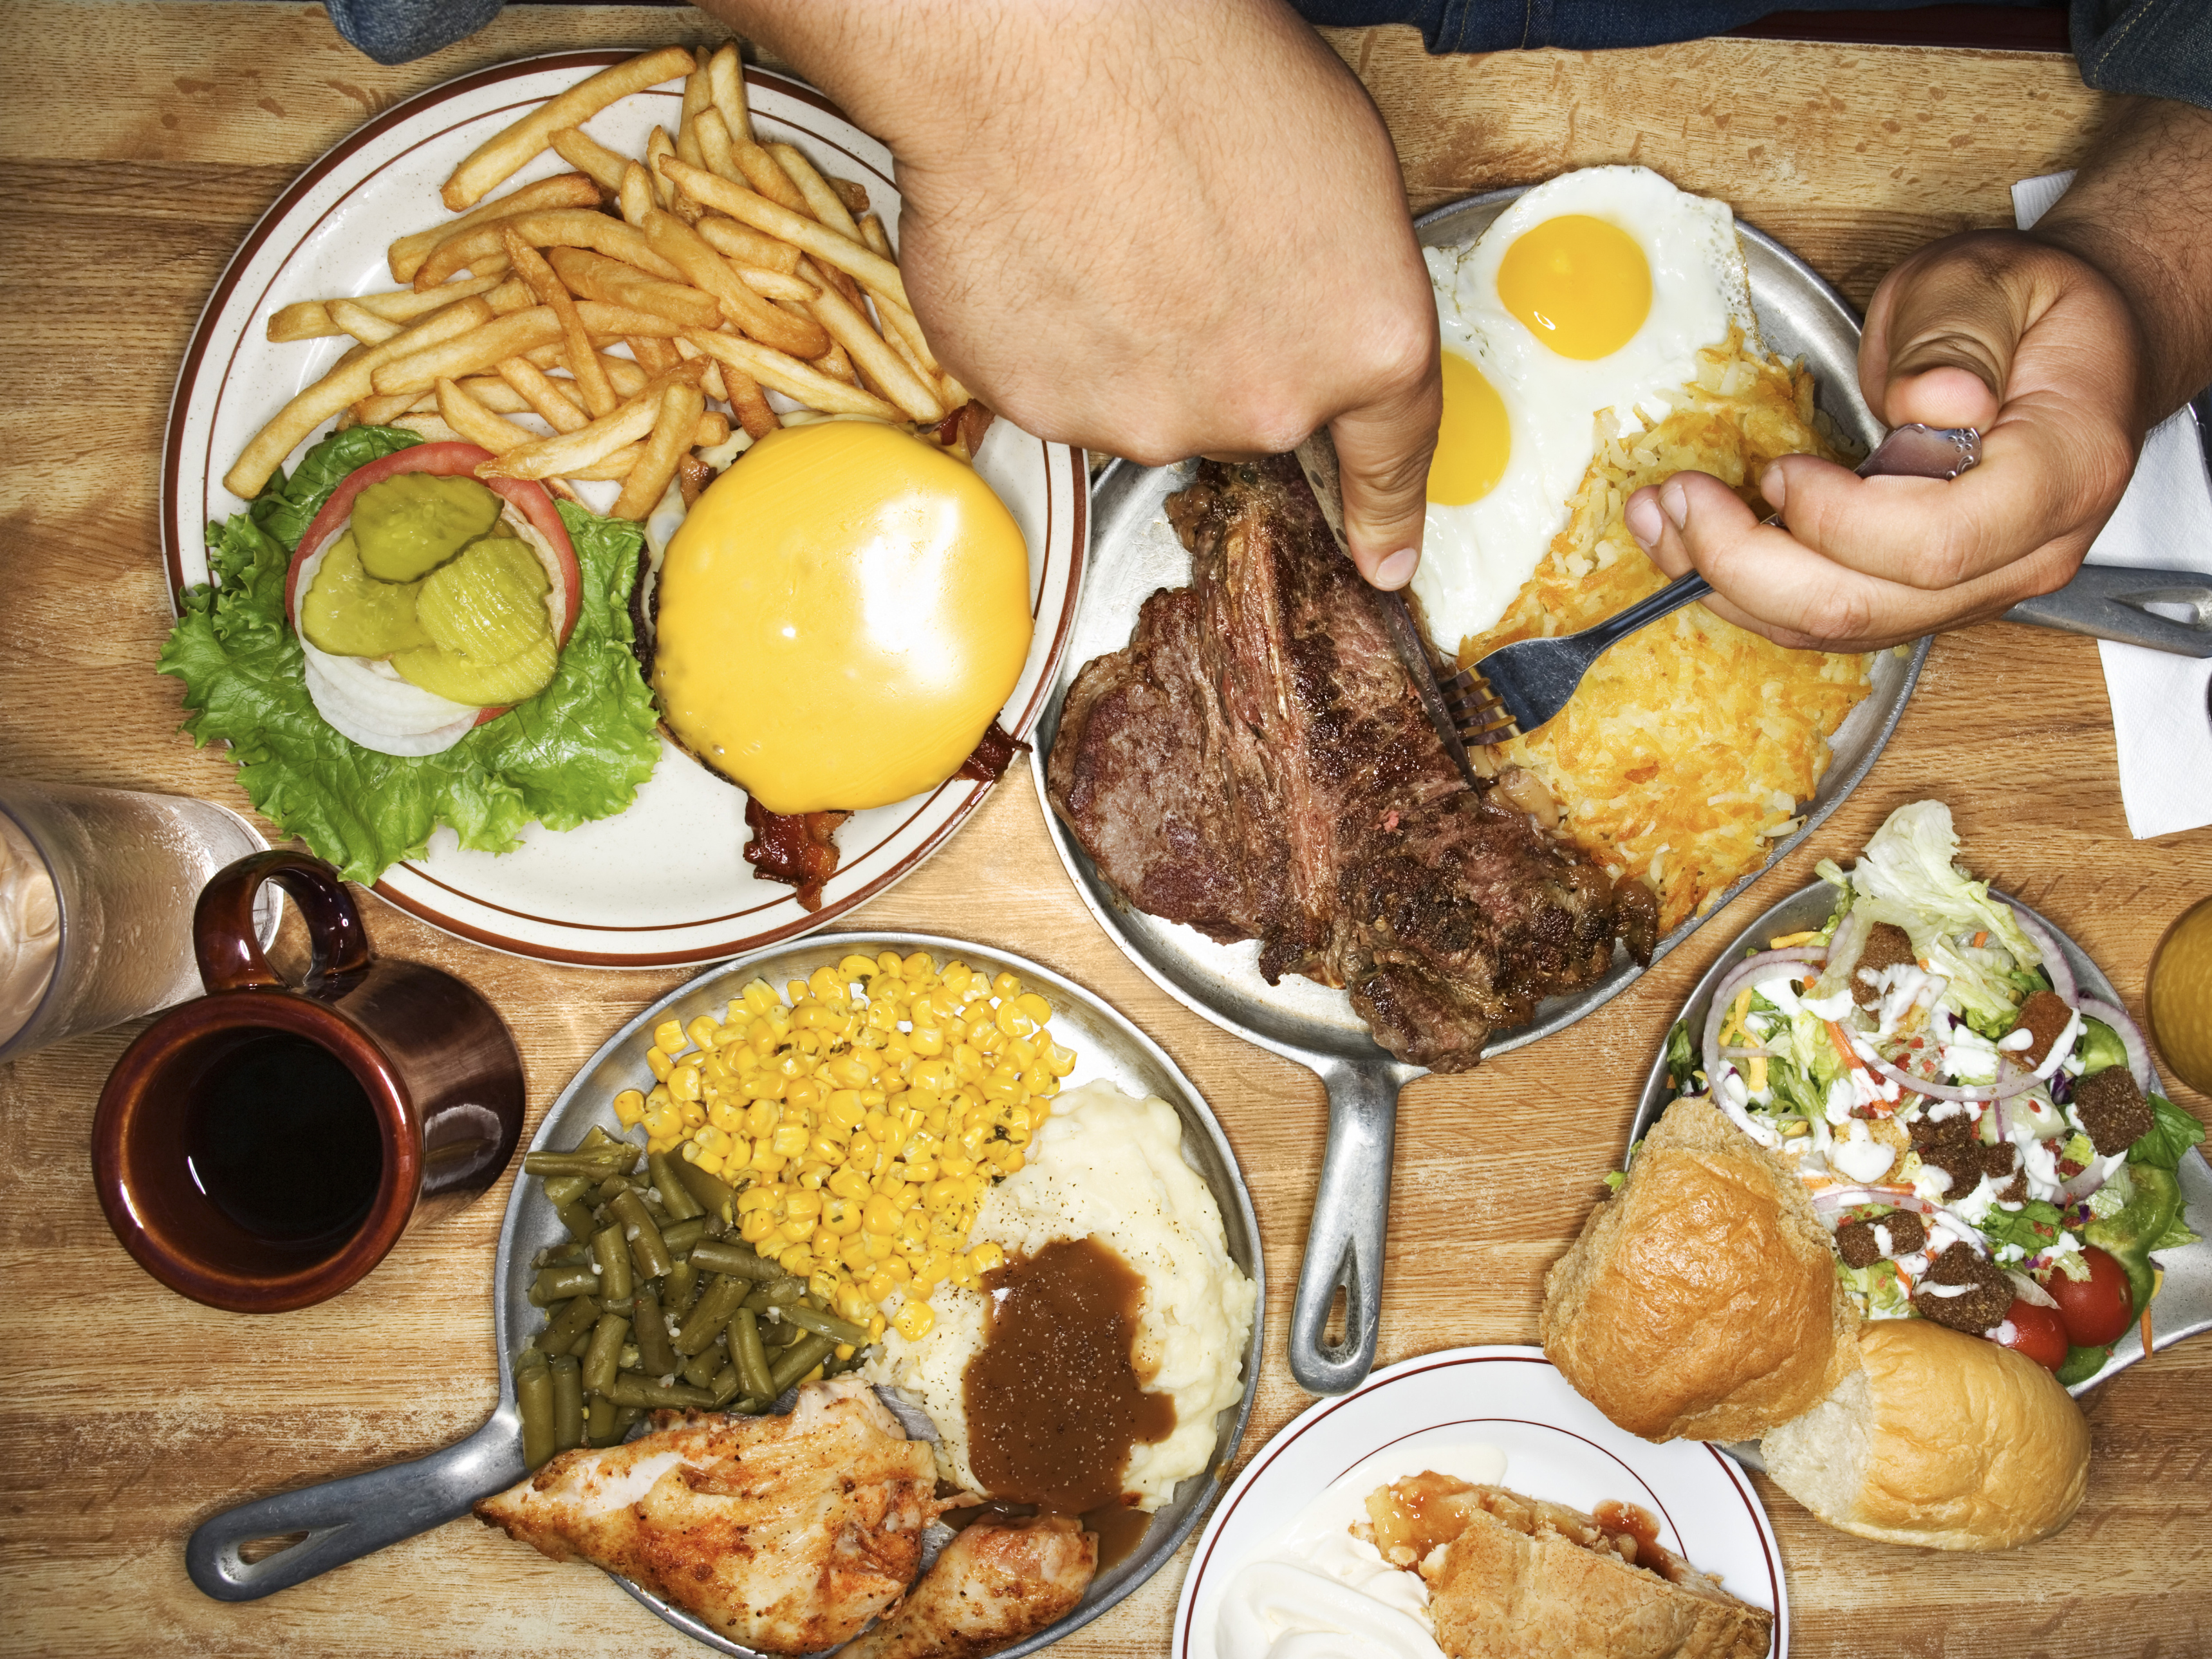 Don't eat the meal that leads to diabetes